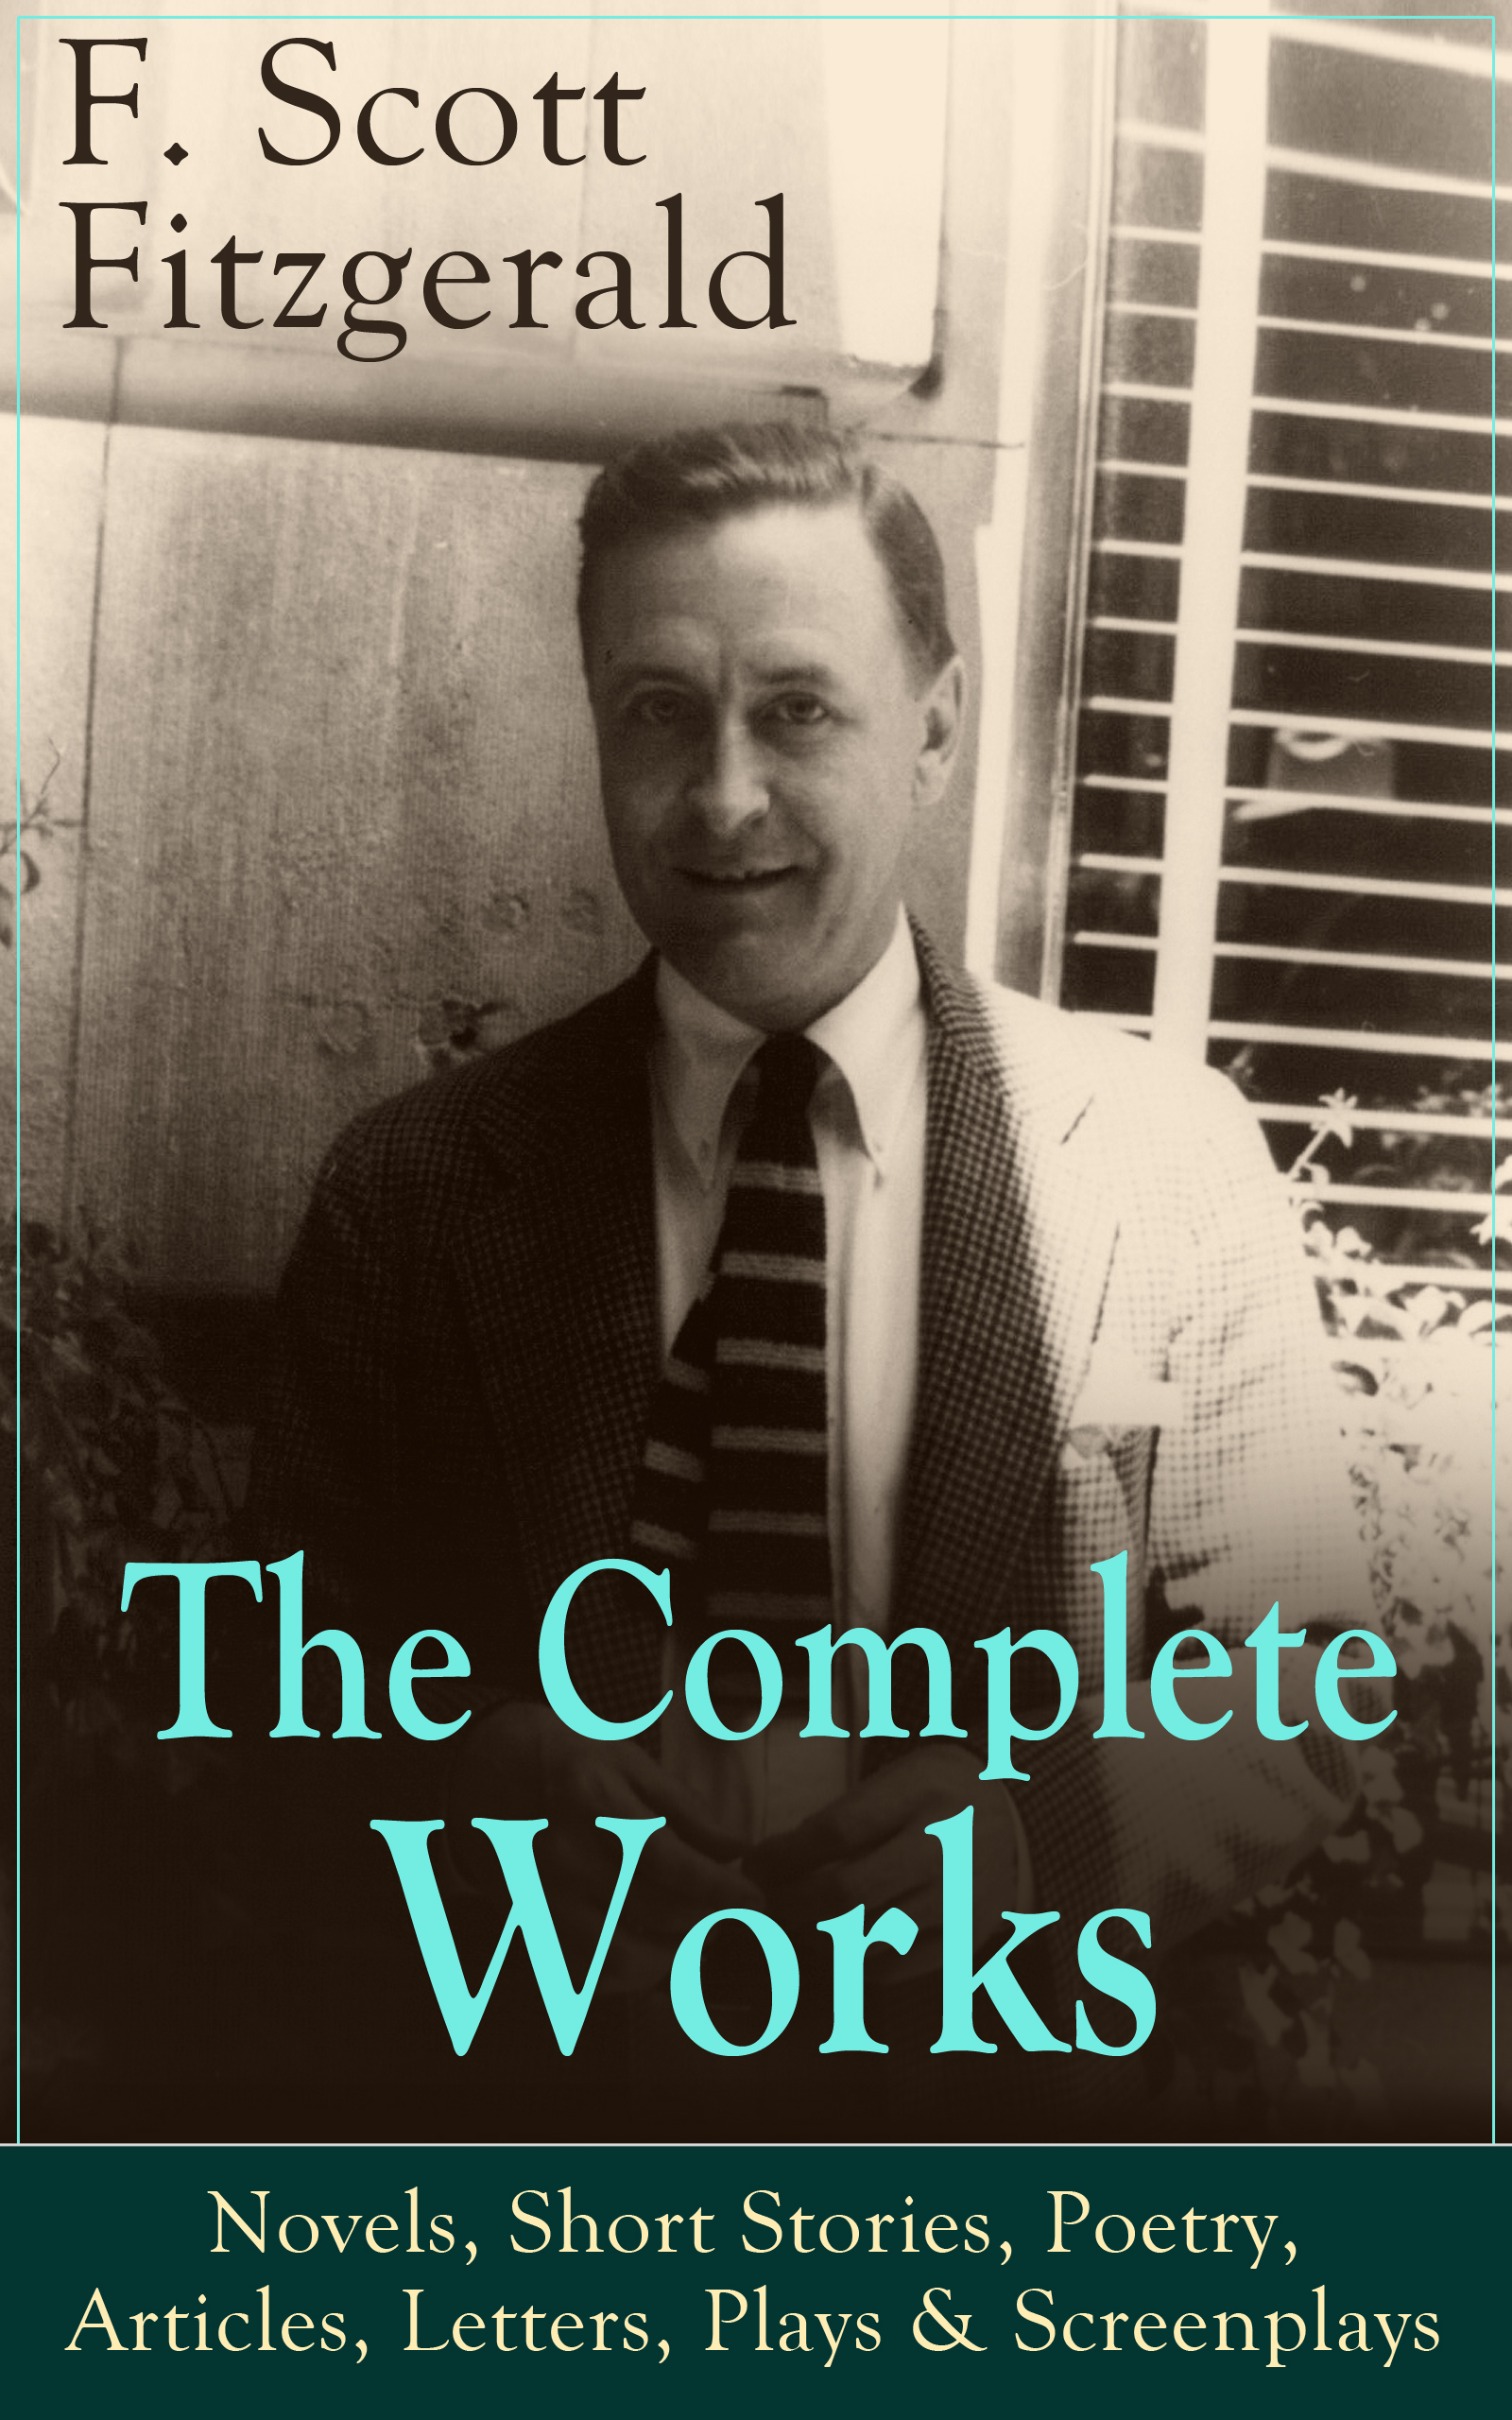 цена F. Scott Fitzgerald The Complete Works of F. Scott Fitzgerald: Novels, Short Stories, Poetry, Articles, Letters, Plays & Screenplays